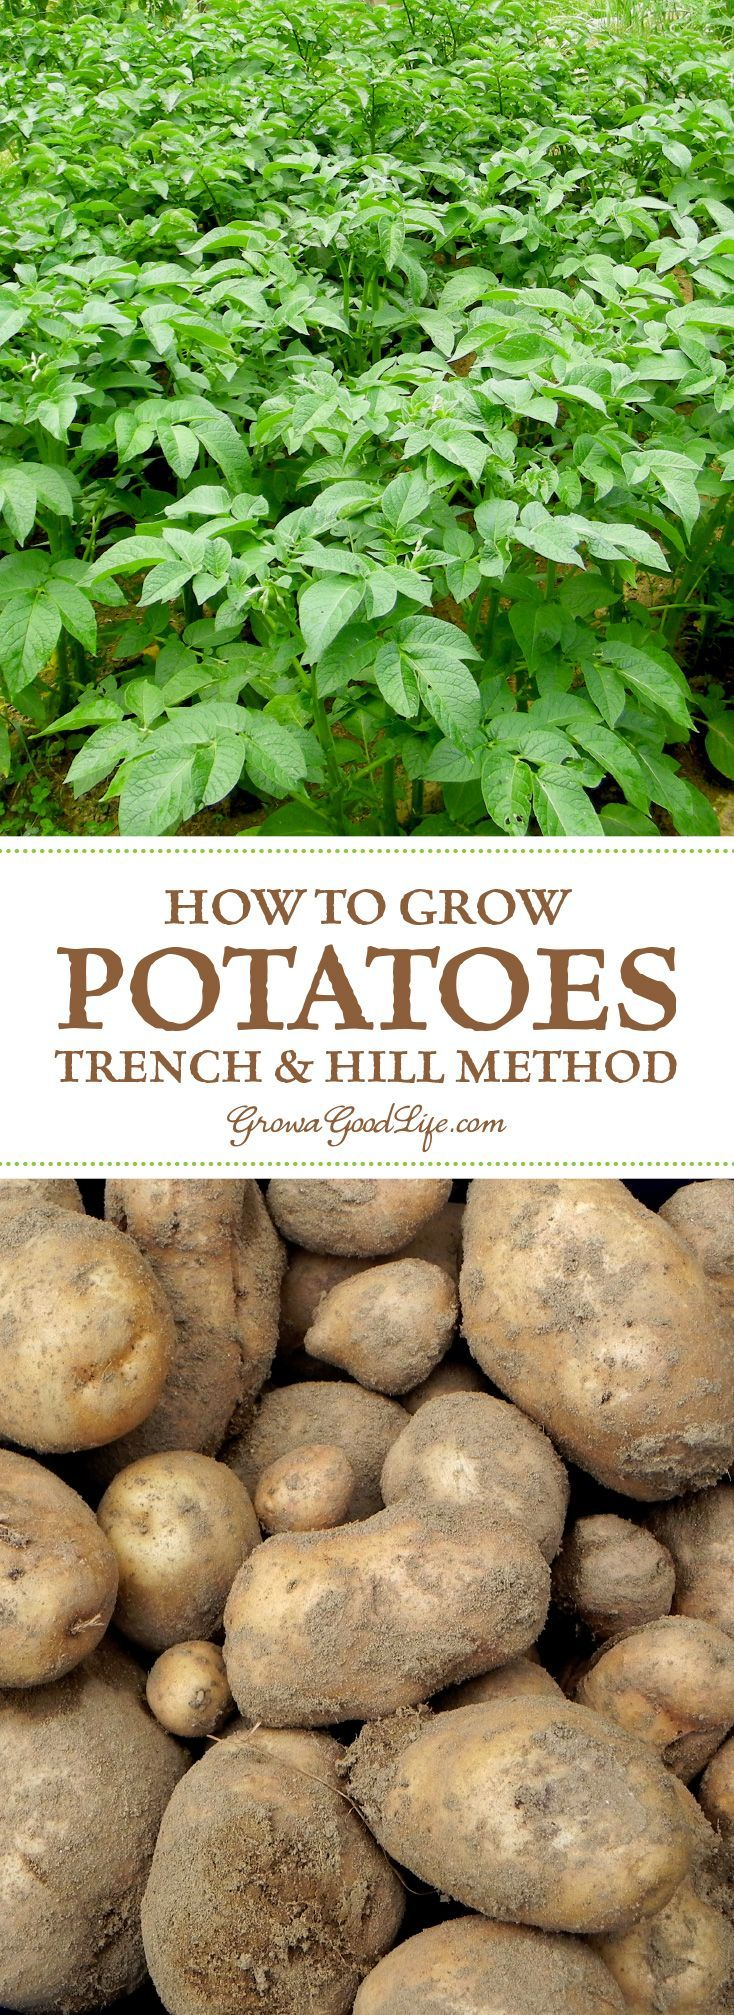 Weeds in flower beds with potato like roots - How To Grow Potatoes Trench And Hill Method